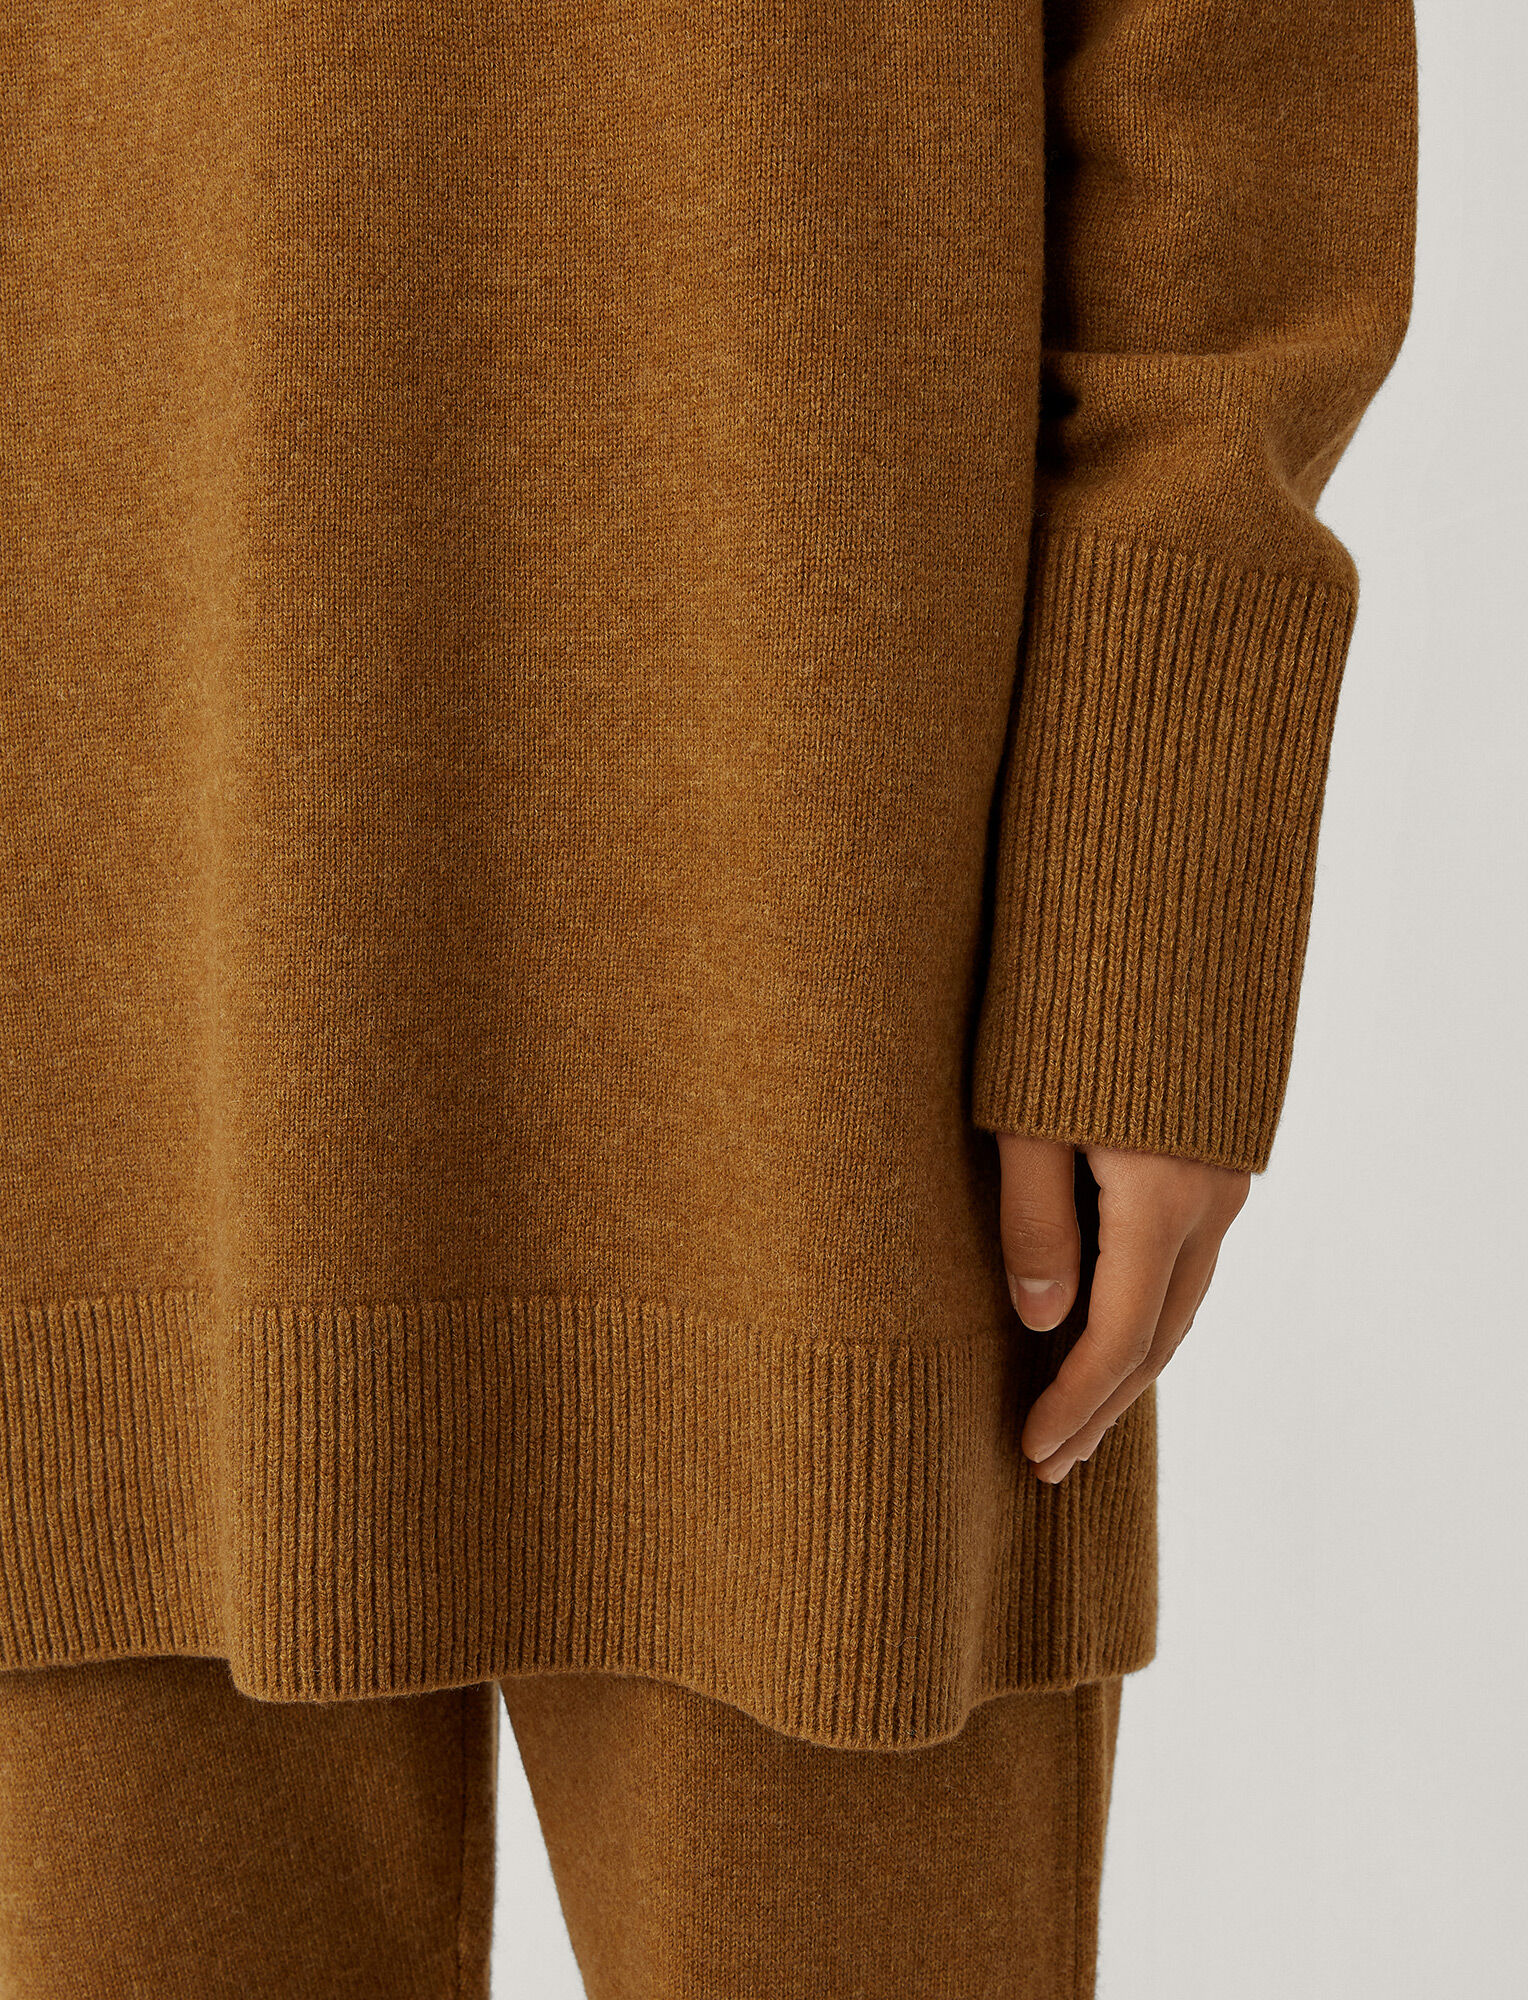 Joseph, Roll Neck O'Size Knit, in Cumin